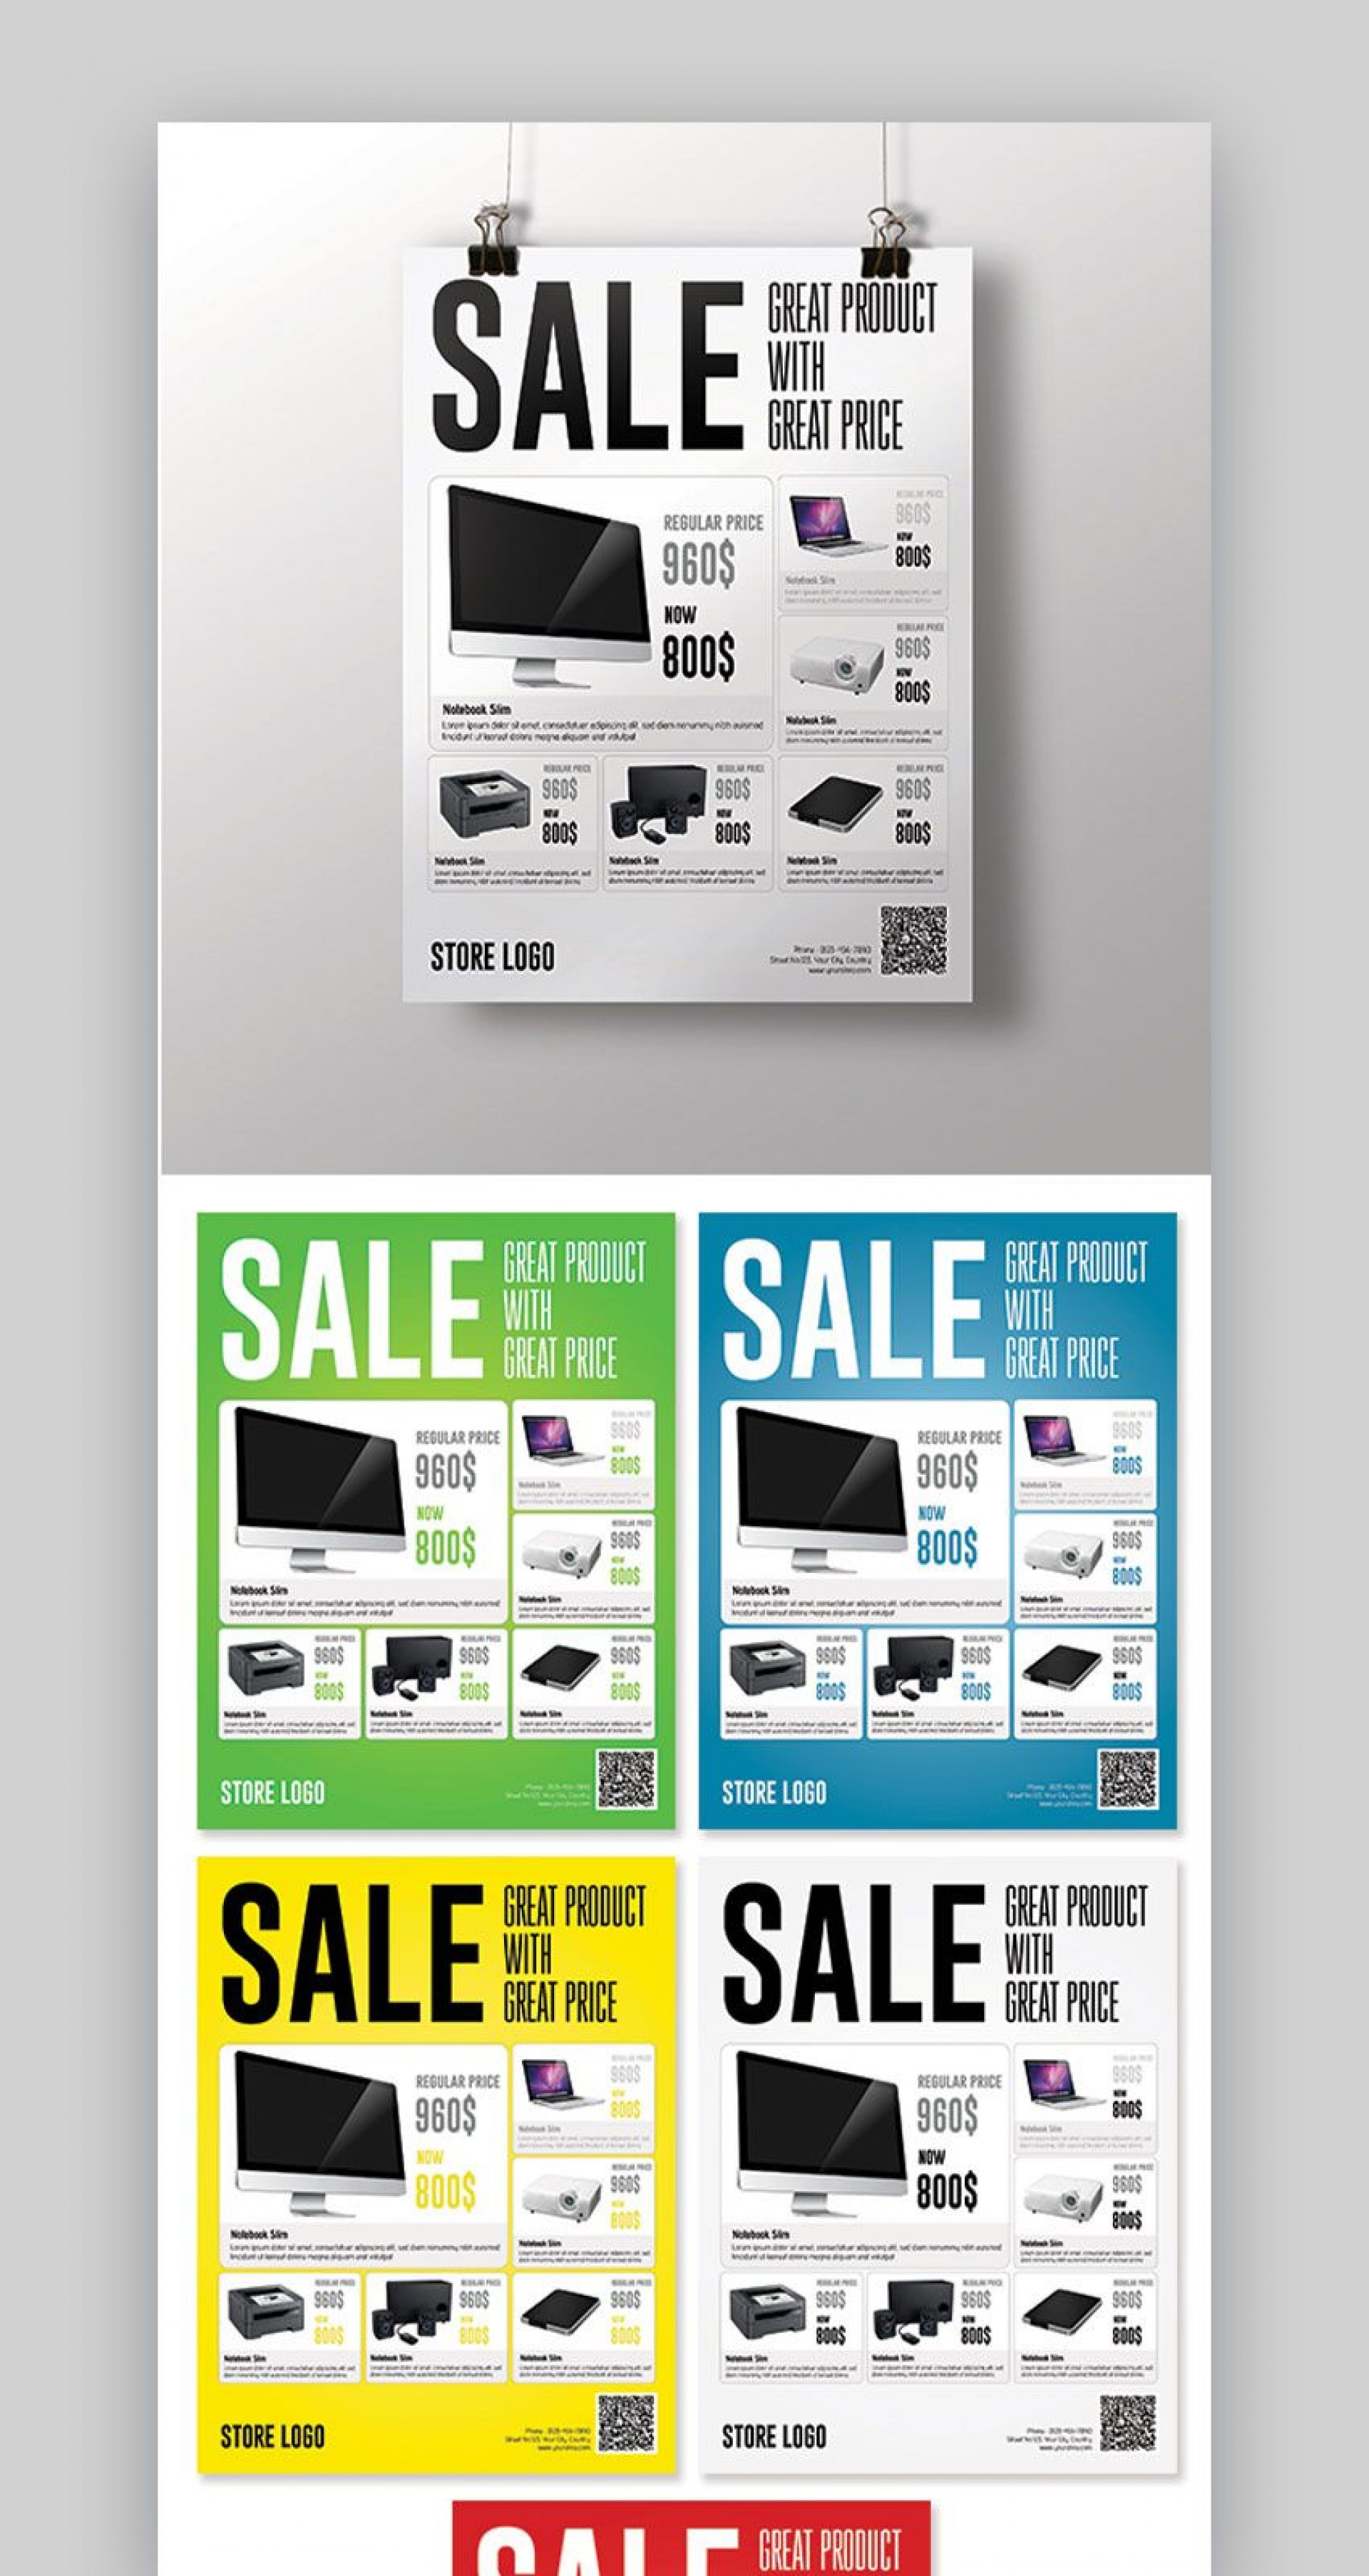 009 Stunning For Sale Flyer Template Idea  Car Ad Microsoft Word House1920